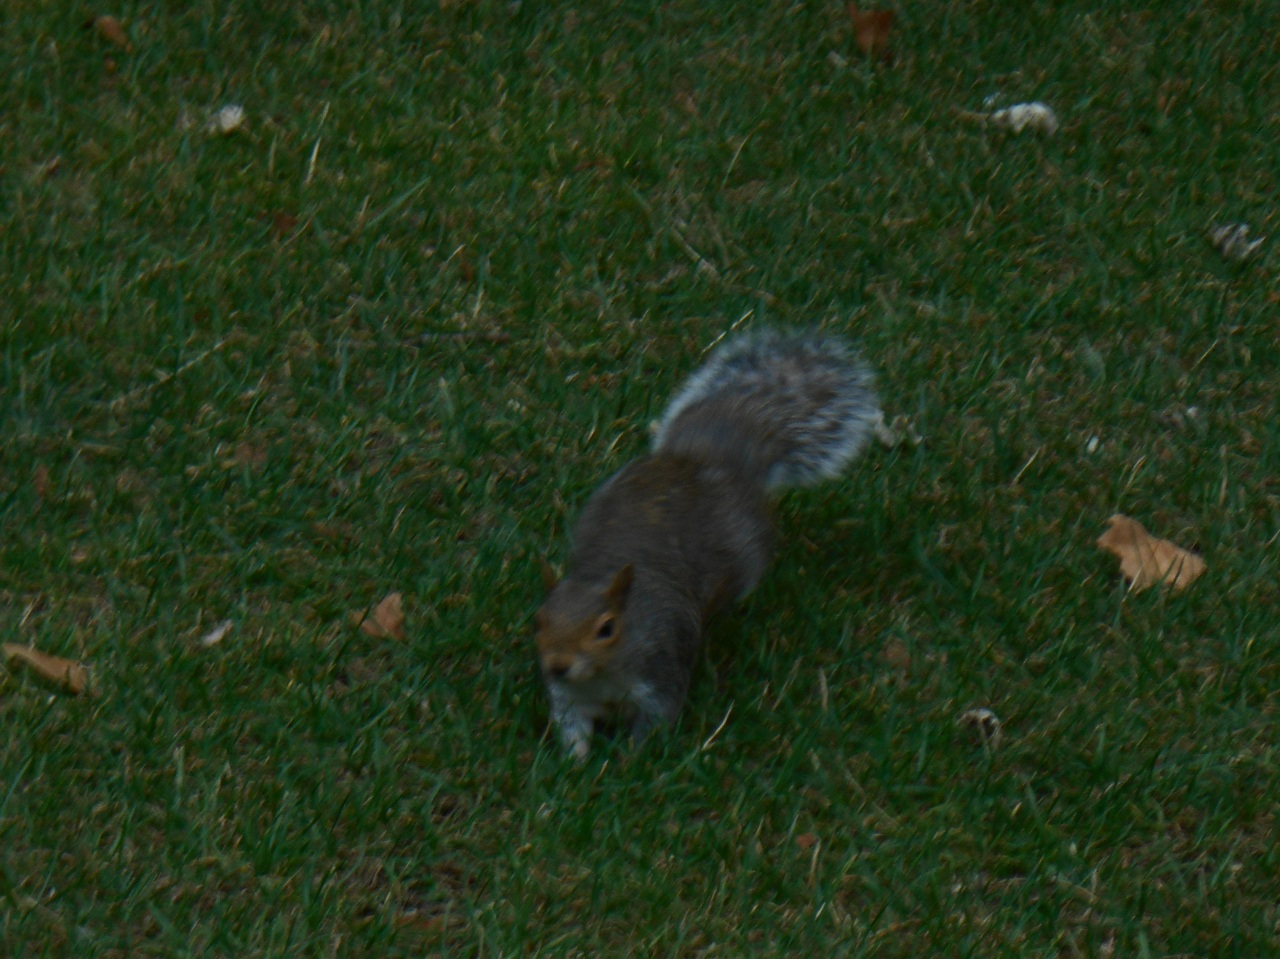 saint-james-park-squirrels.jpg